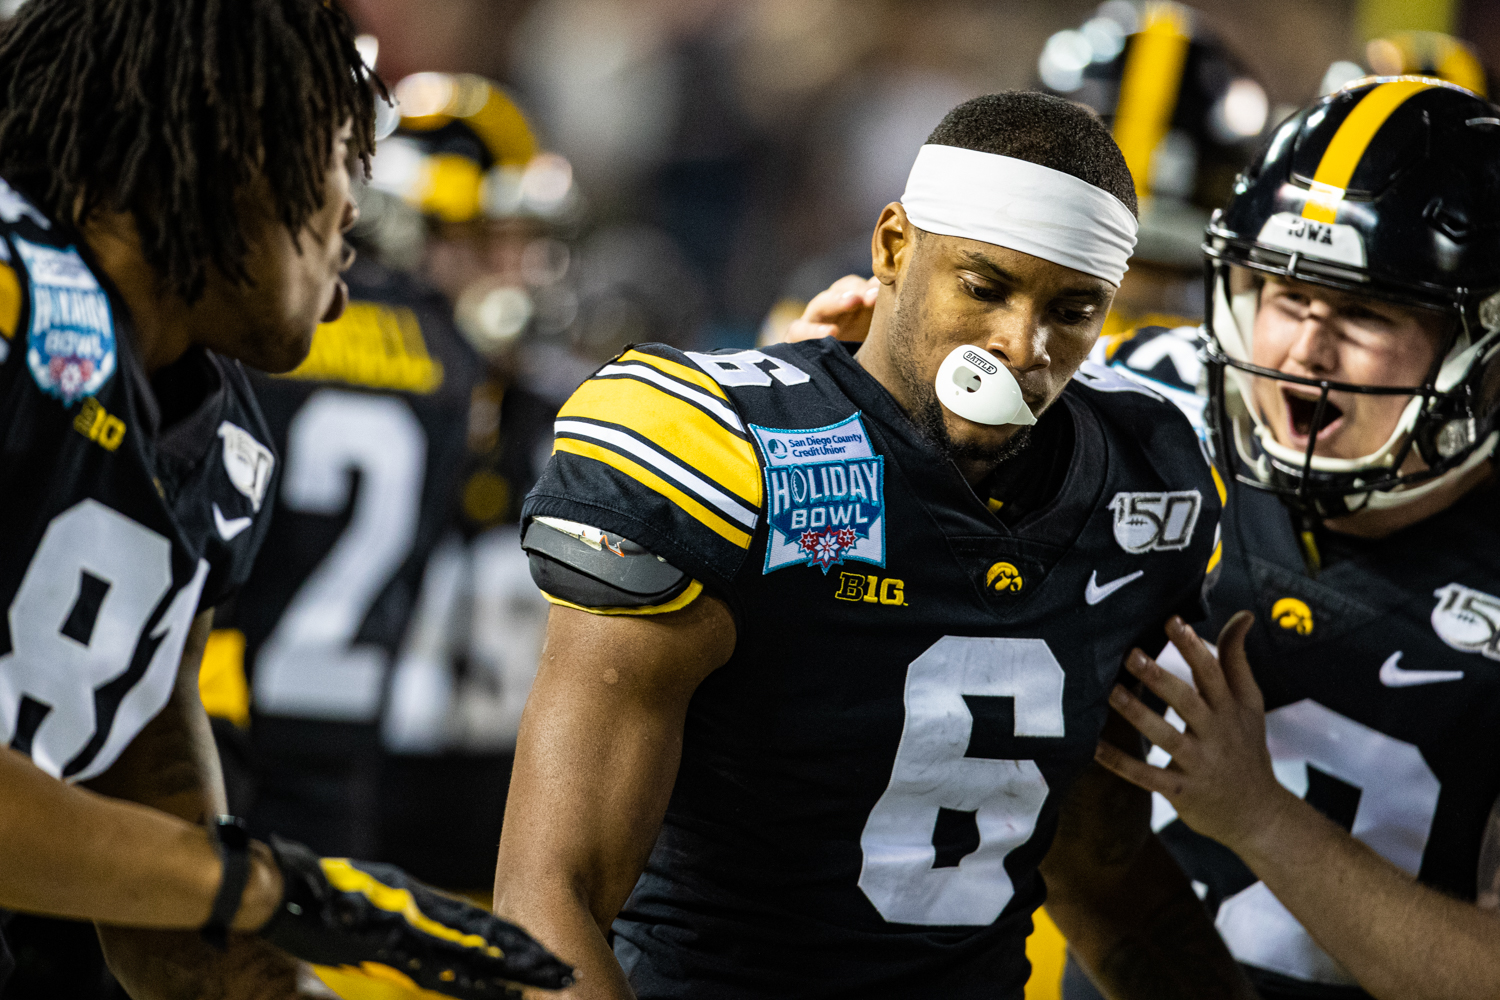 Iowa wideout Ihmir Smith-Marsette celebrates a kick-return touchdown during the 2019 SDCCU Holiday Bowl between Iowa and USC in San Diego on Friday, Dec. 27, 2019. The Hawkeyes defeated the Trojans, 49-24.